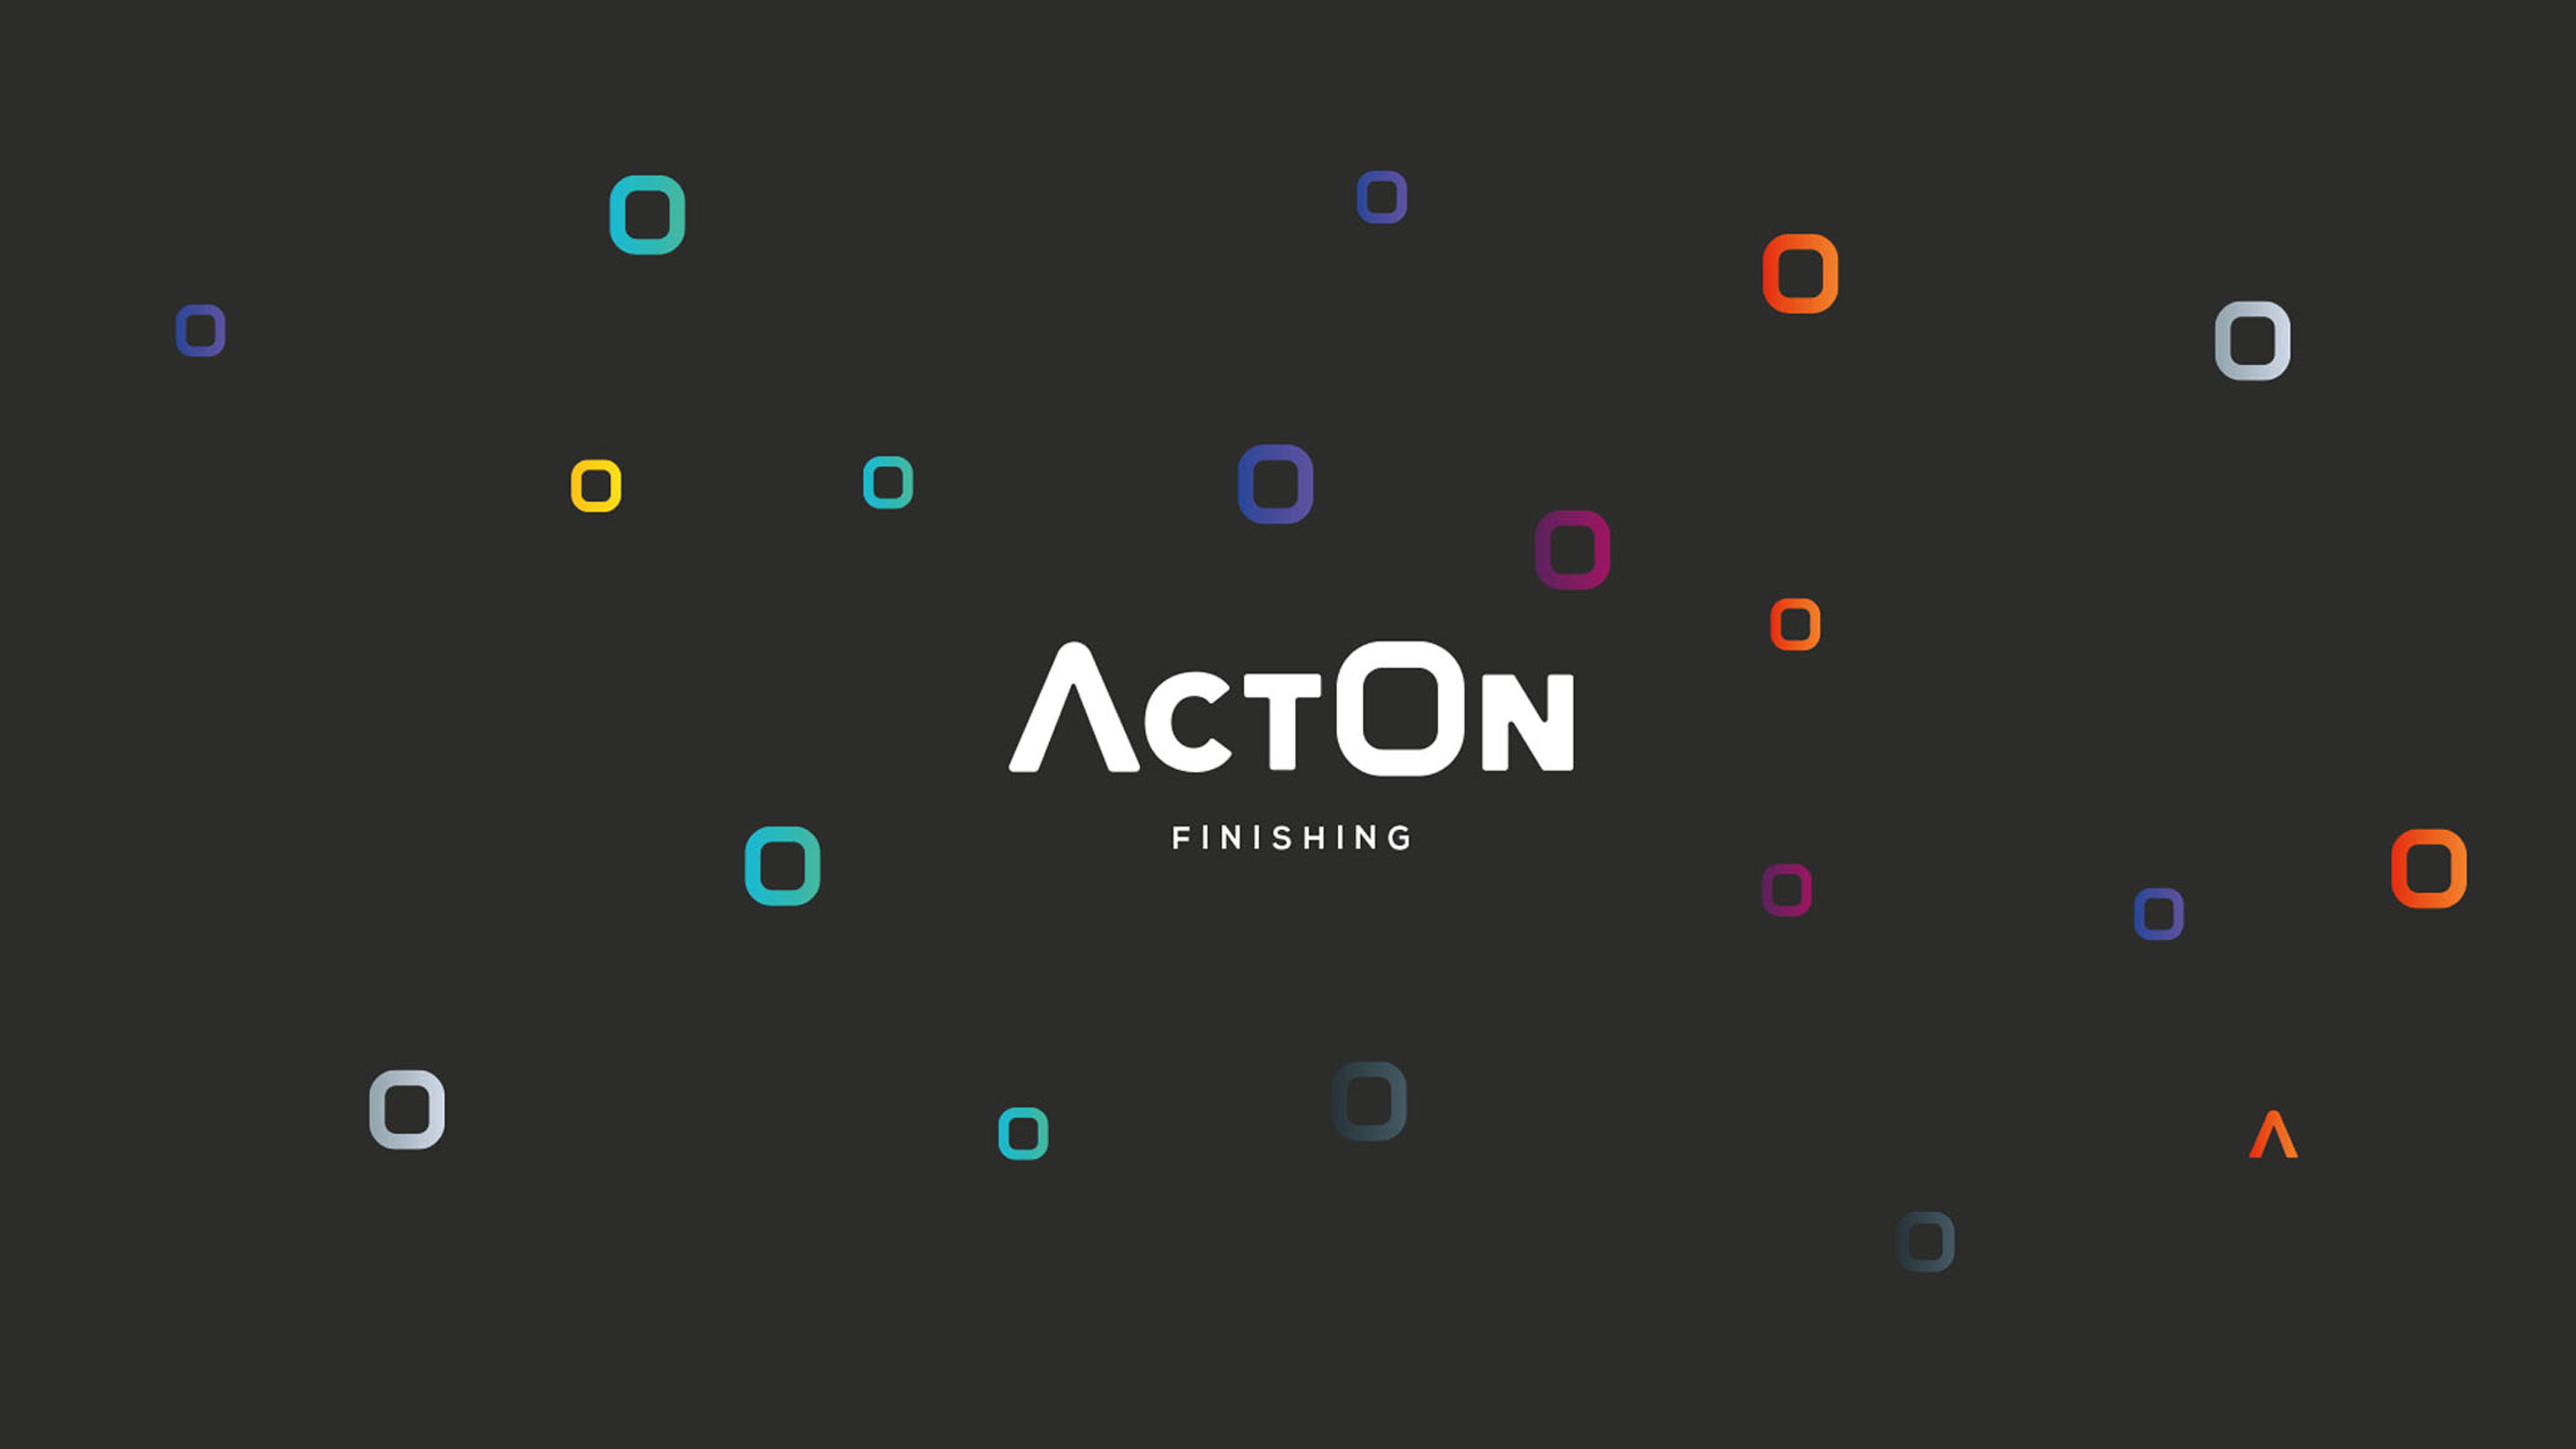 ActOn Finishing digital strategy and brand design